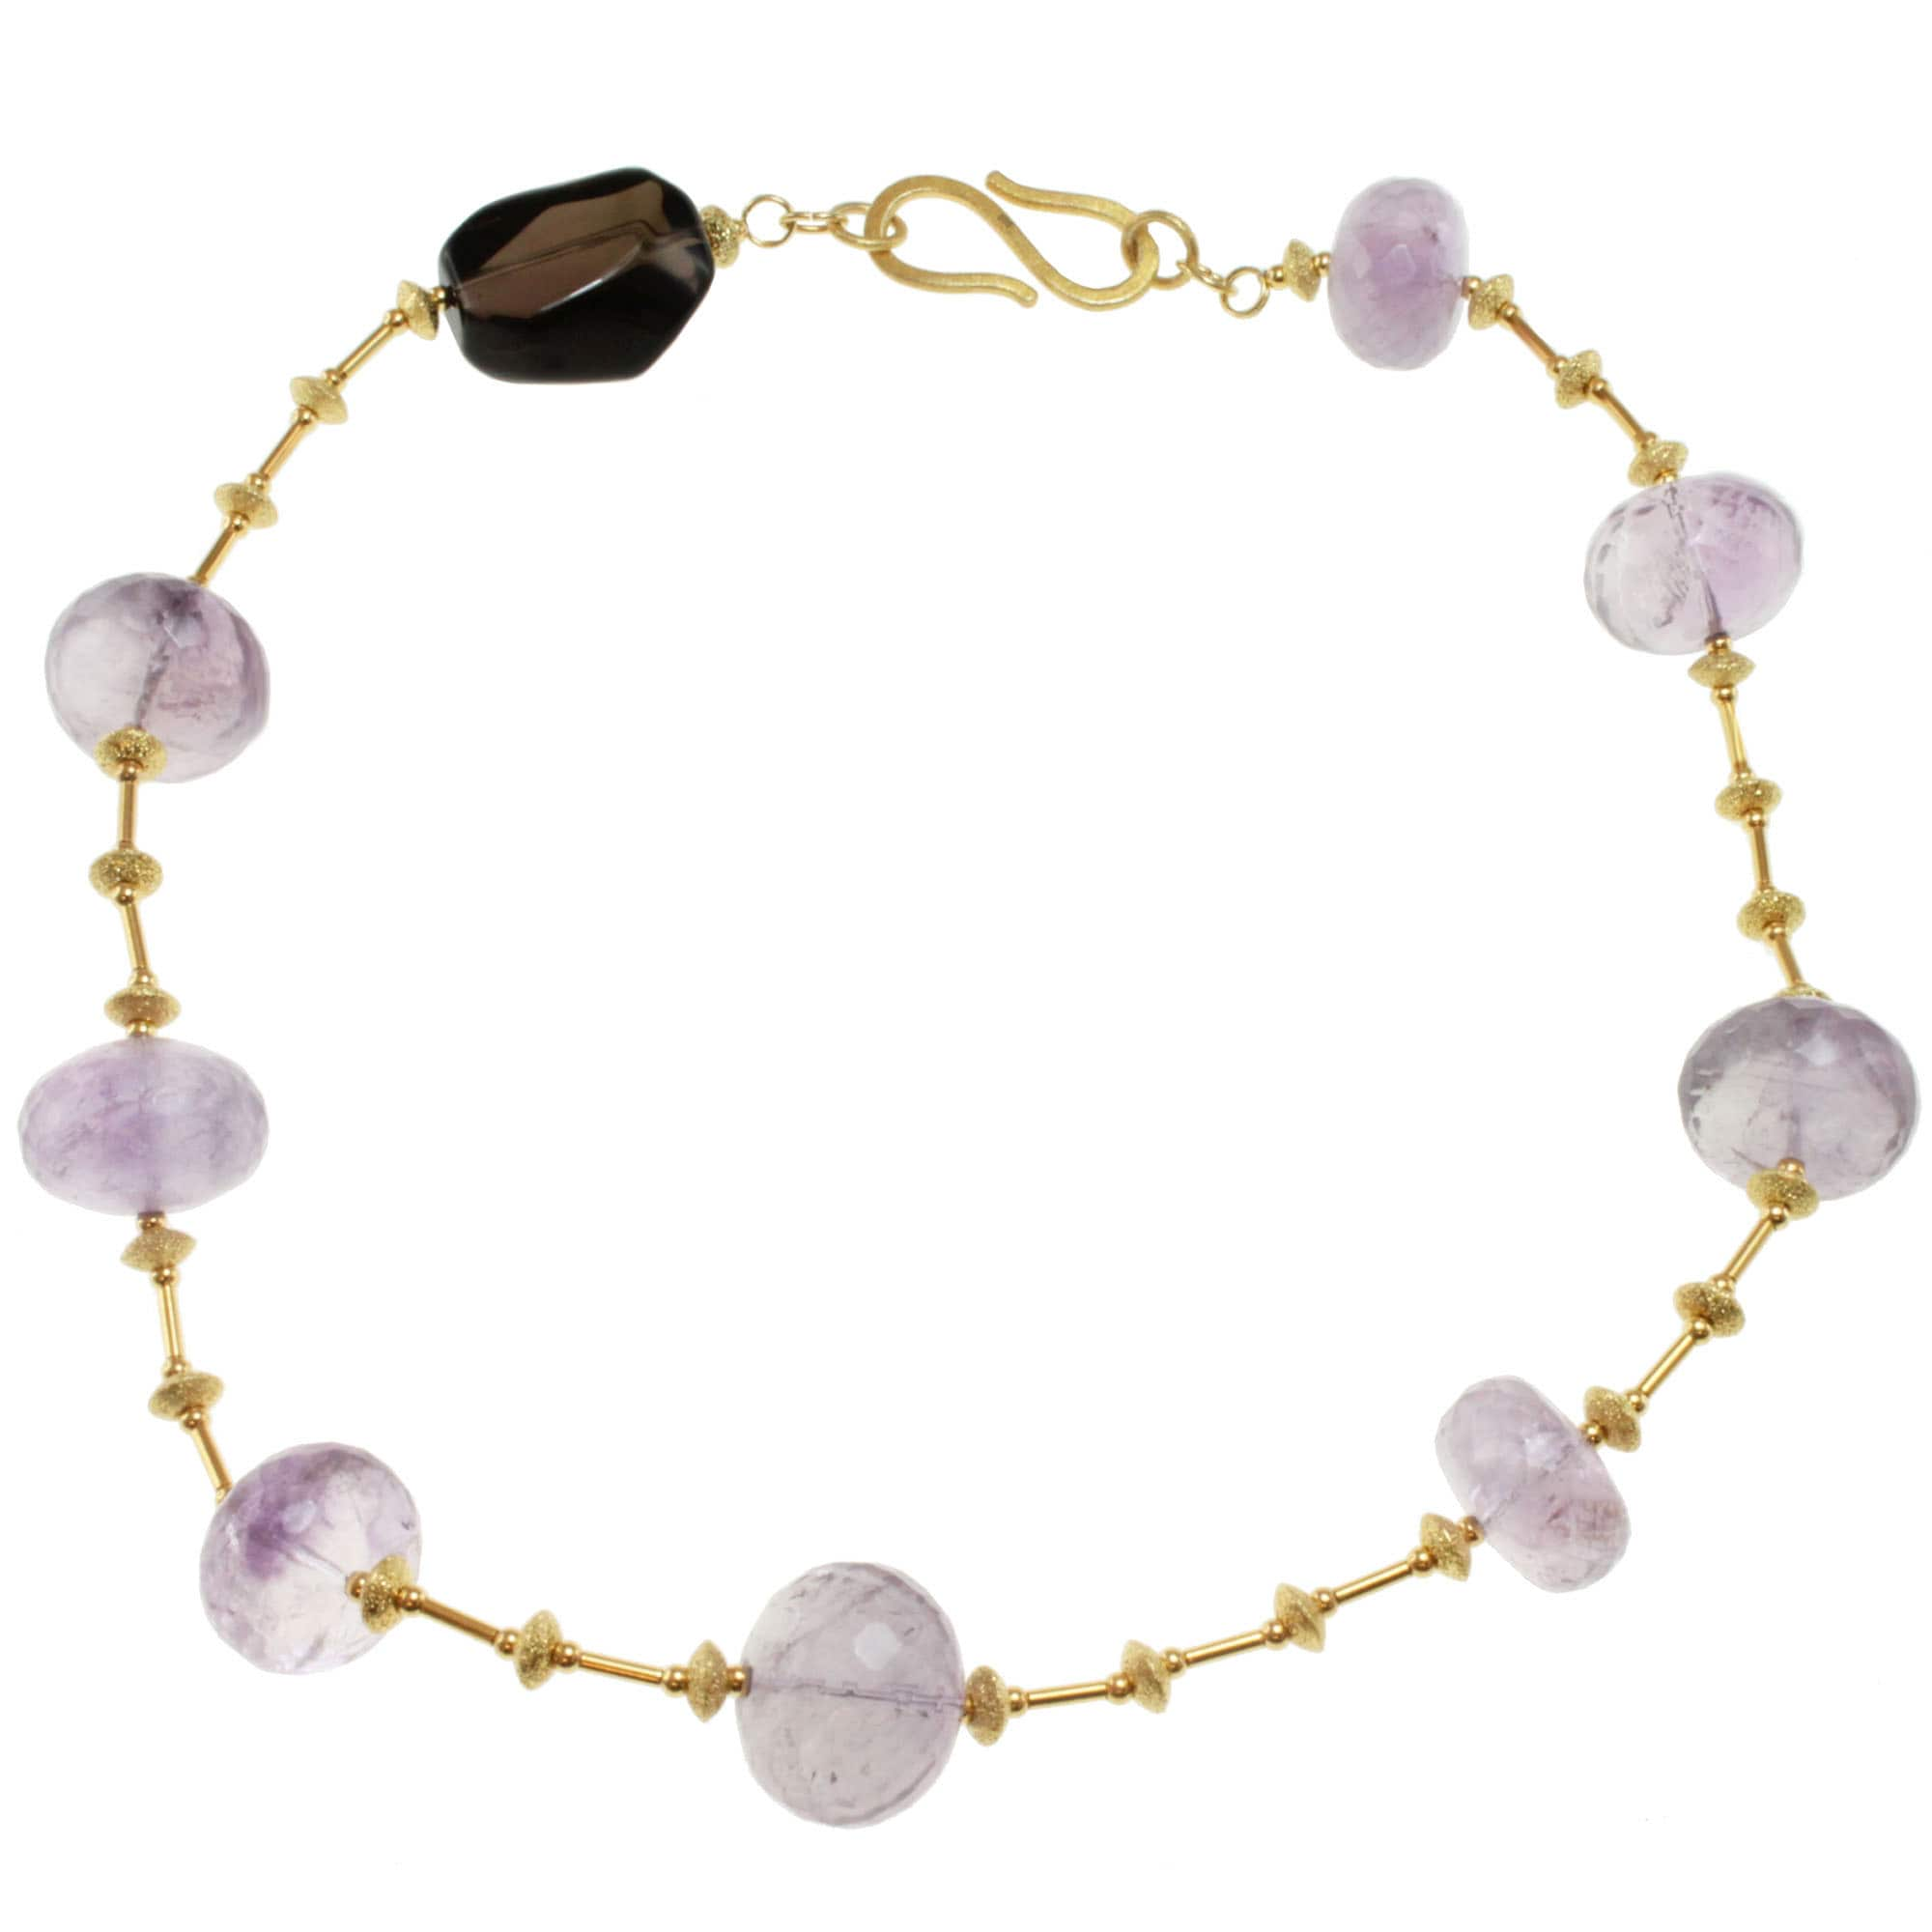 Michael Valitutti Gold over Sterling Silver Amethyst and Smoky Quartz Necklace